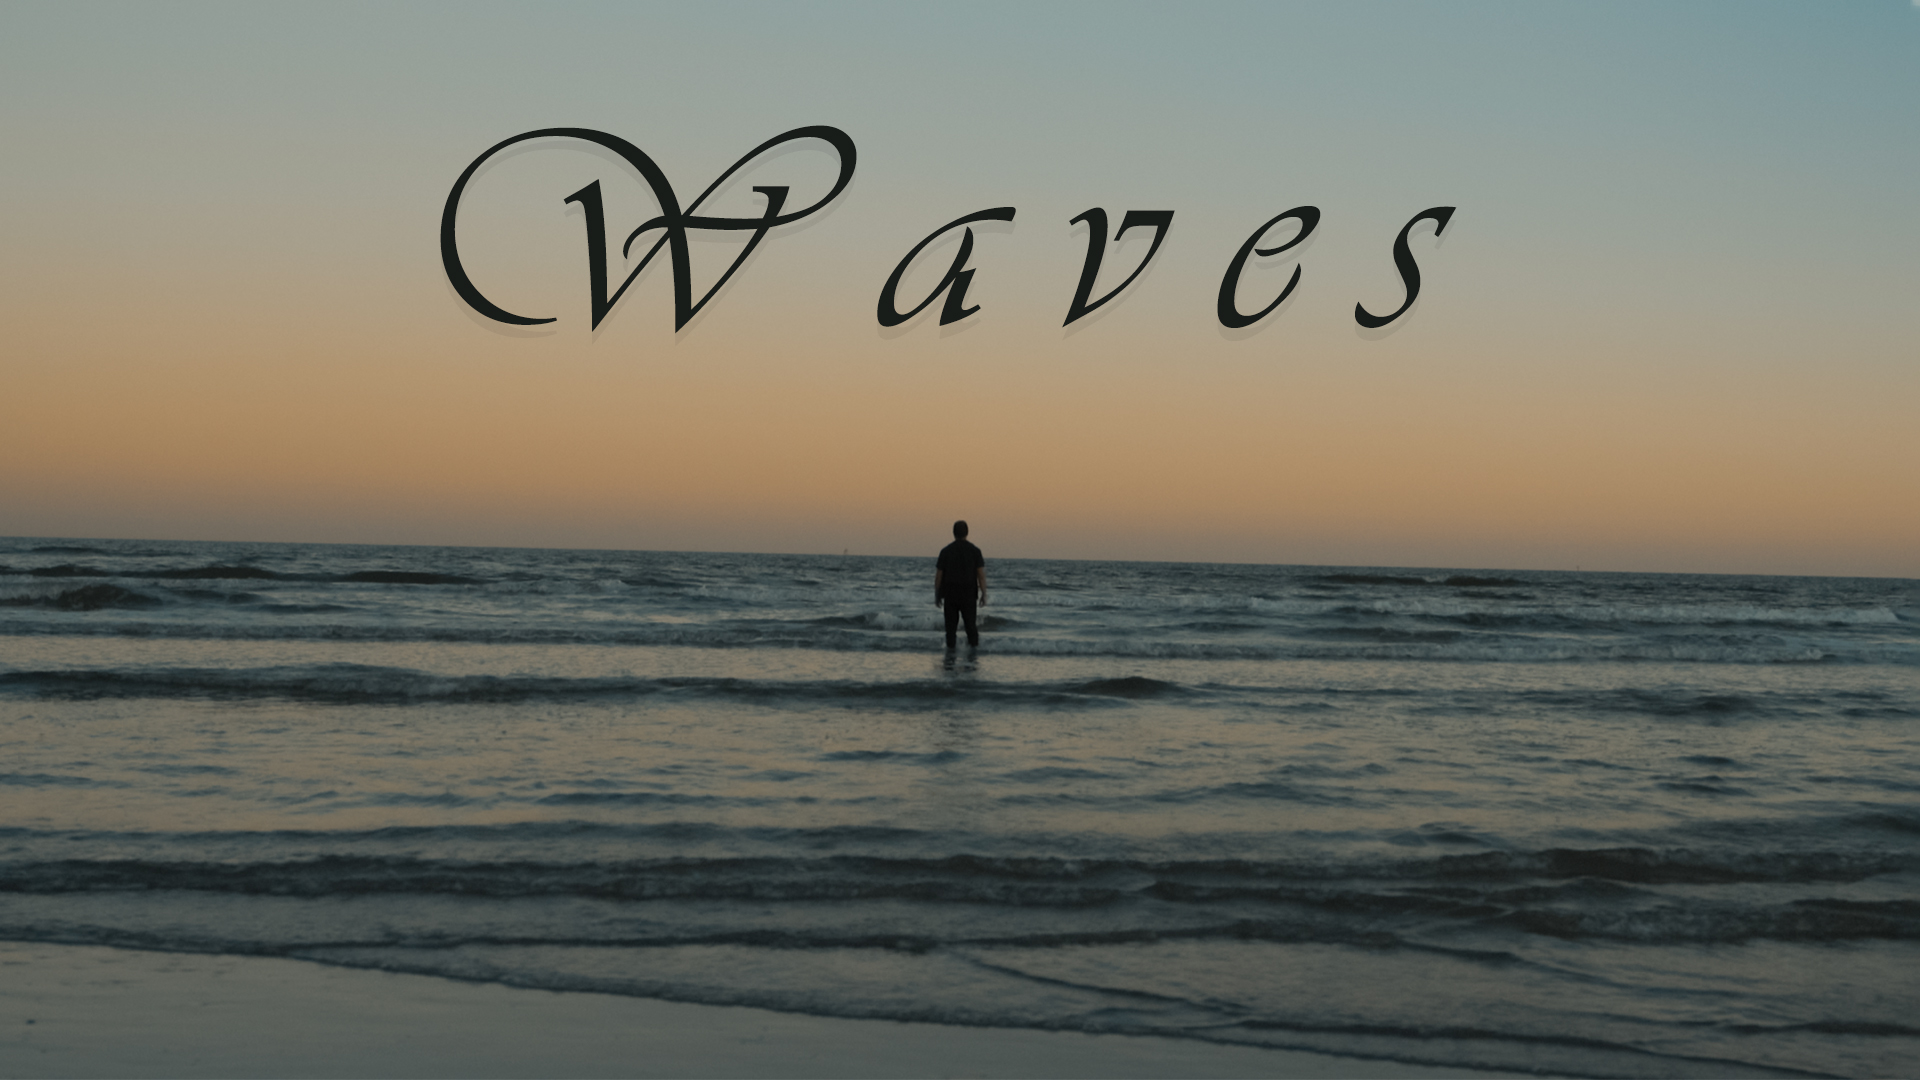 Waves - My RØDE Reel 2020 | Sling and Stone Films